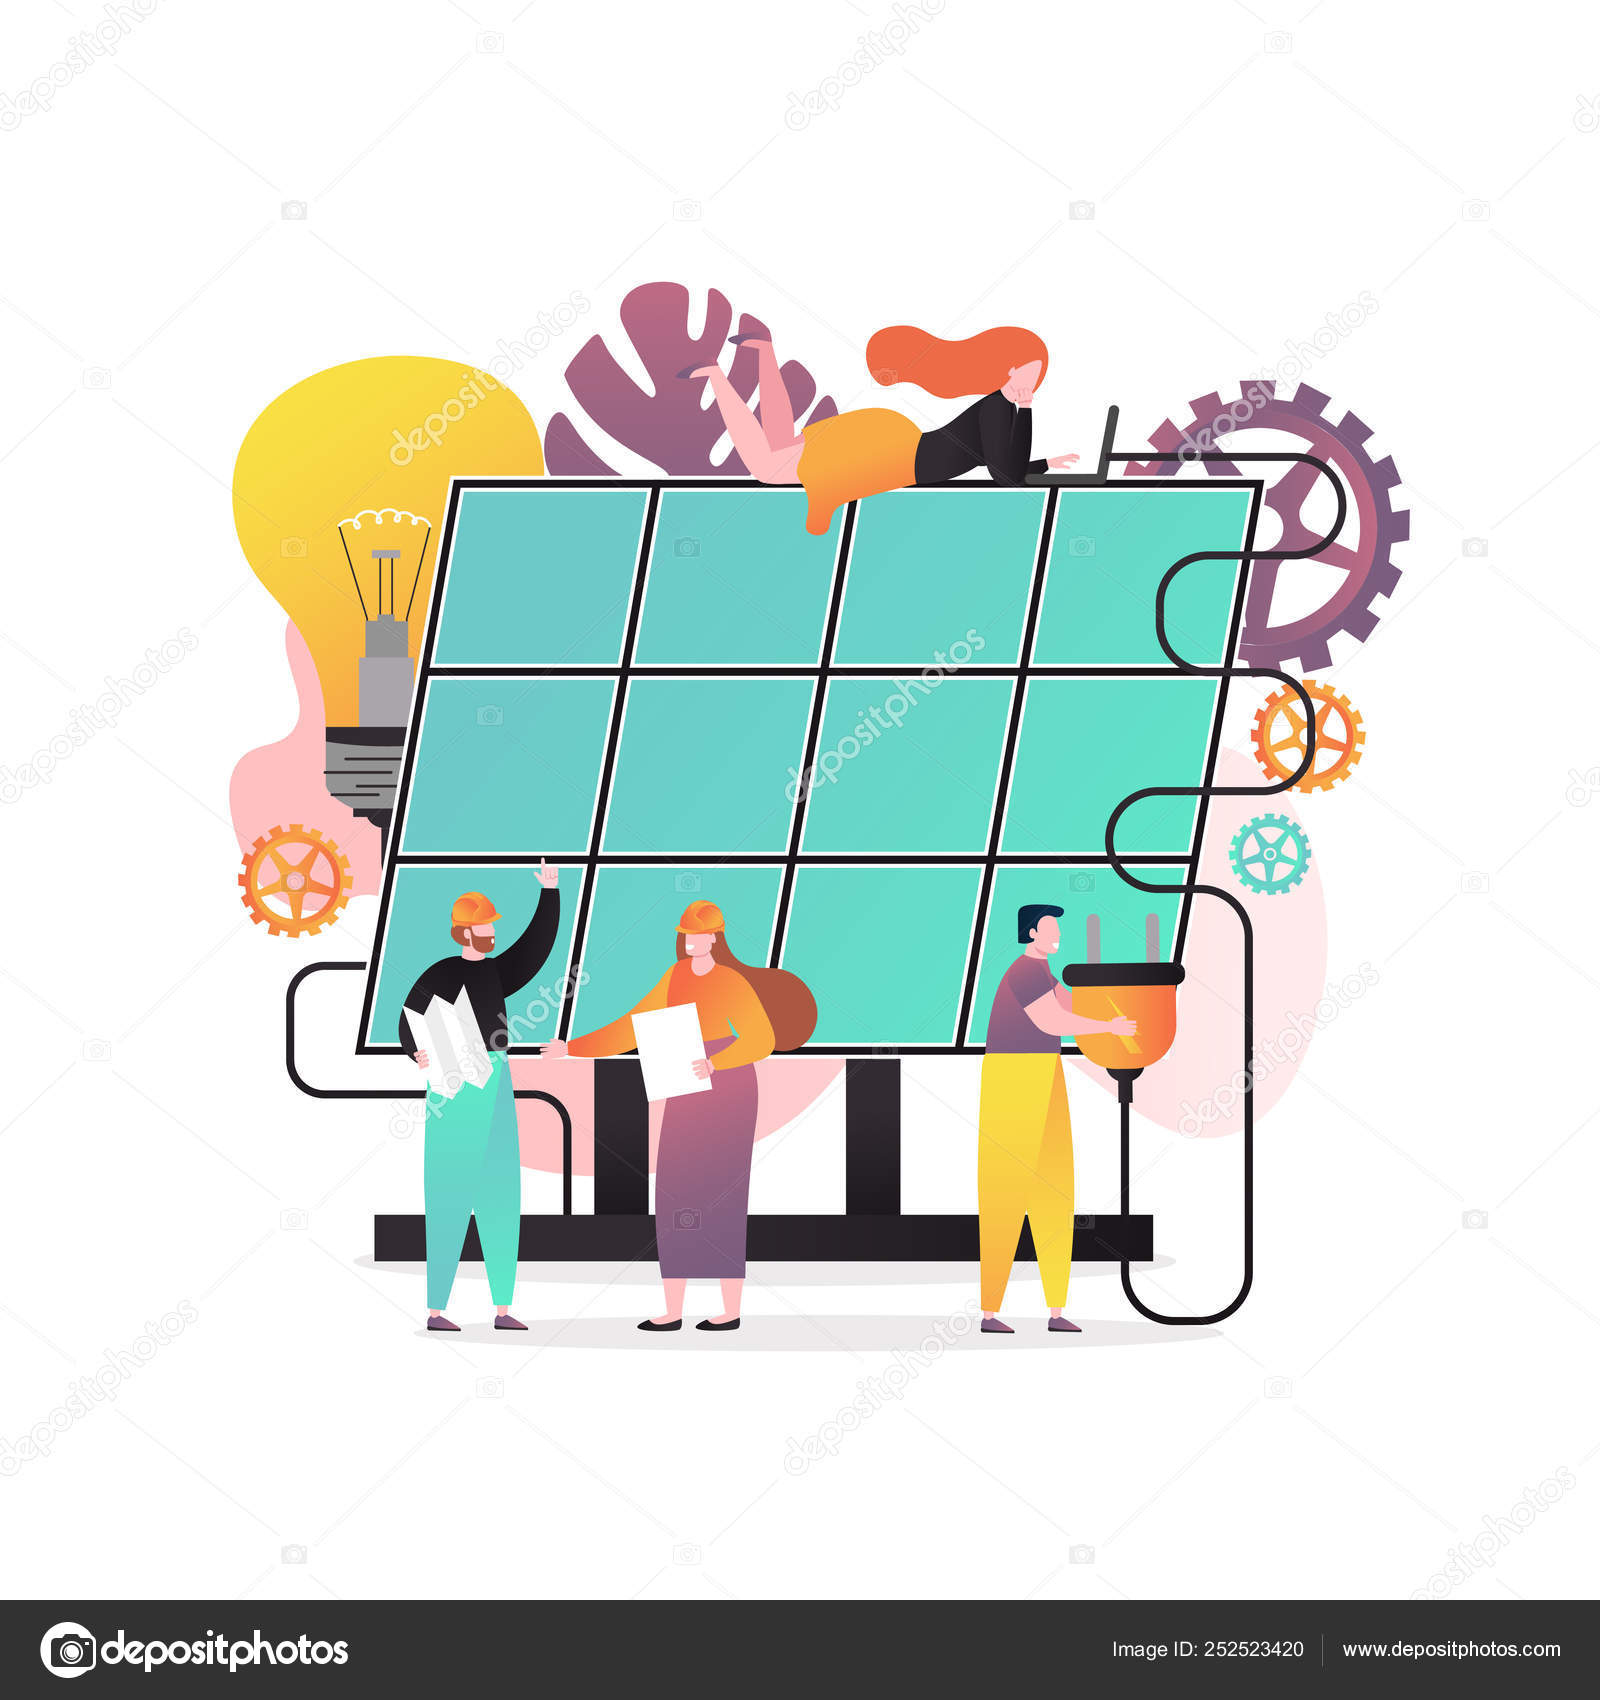 Solar energy vector concept for web banner, website page